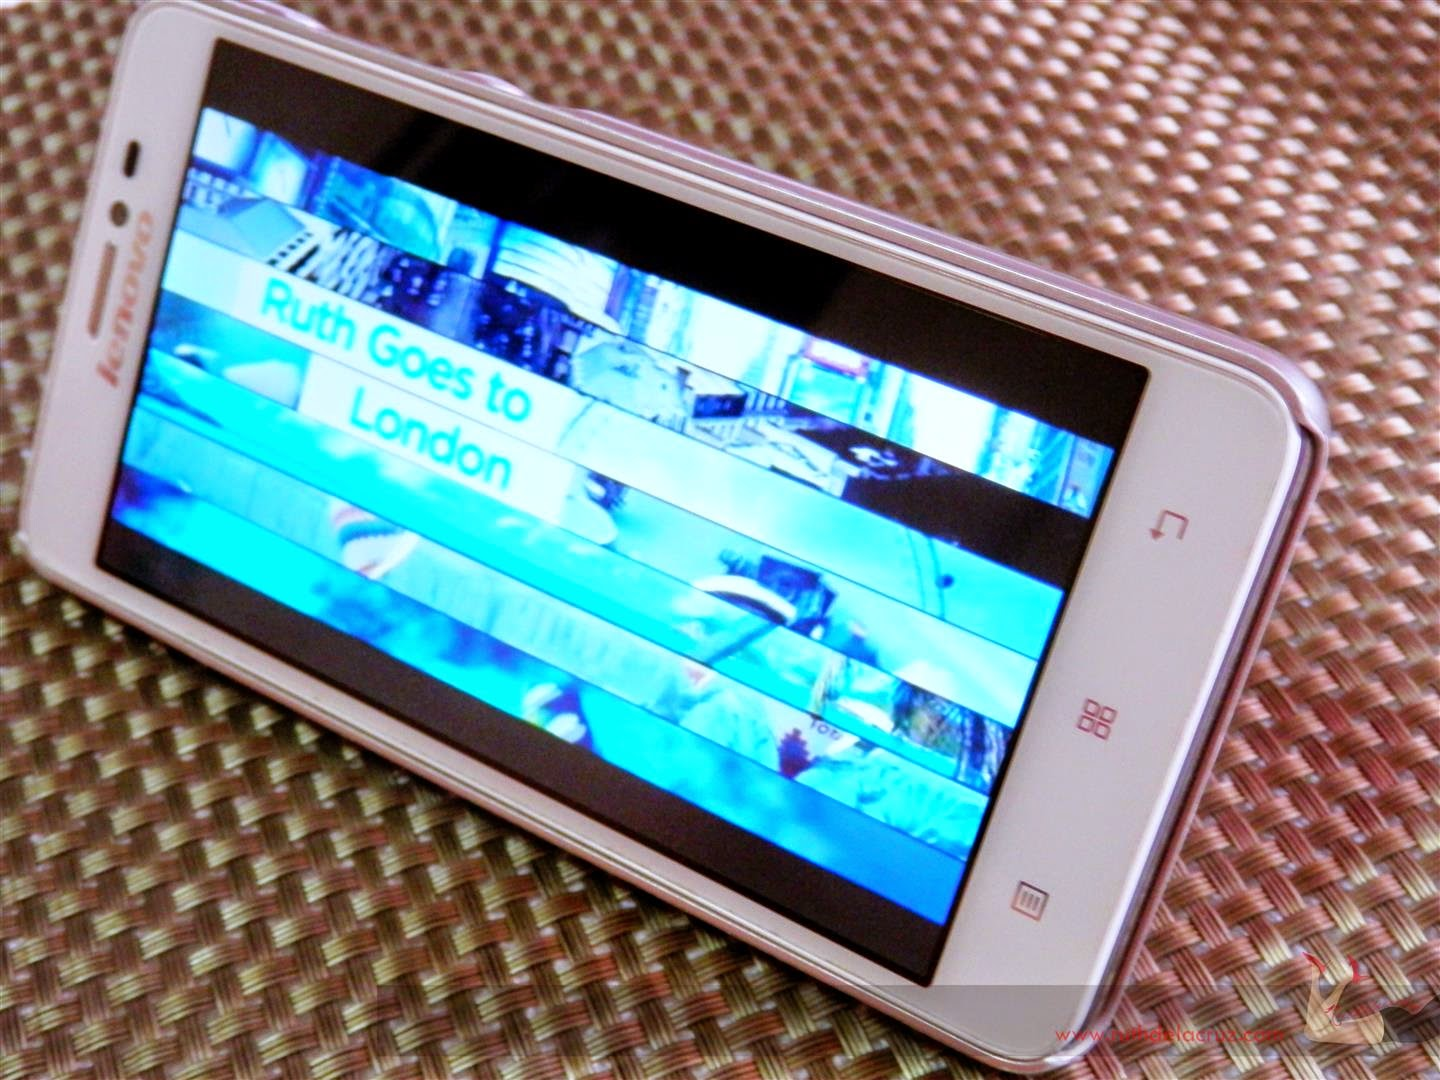 Ruthdelacruz Travel And Lifestyle Blog Review Lenovo S850 Quadcore Processor It Is Also Nice To Watch Movies Videos Via Because Lightweight Comes With A Case Check Out